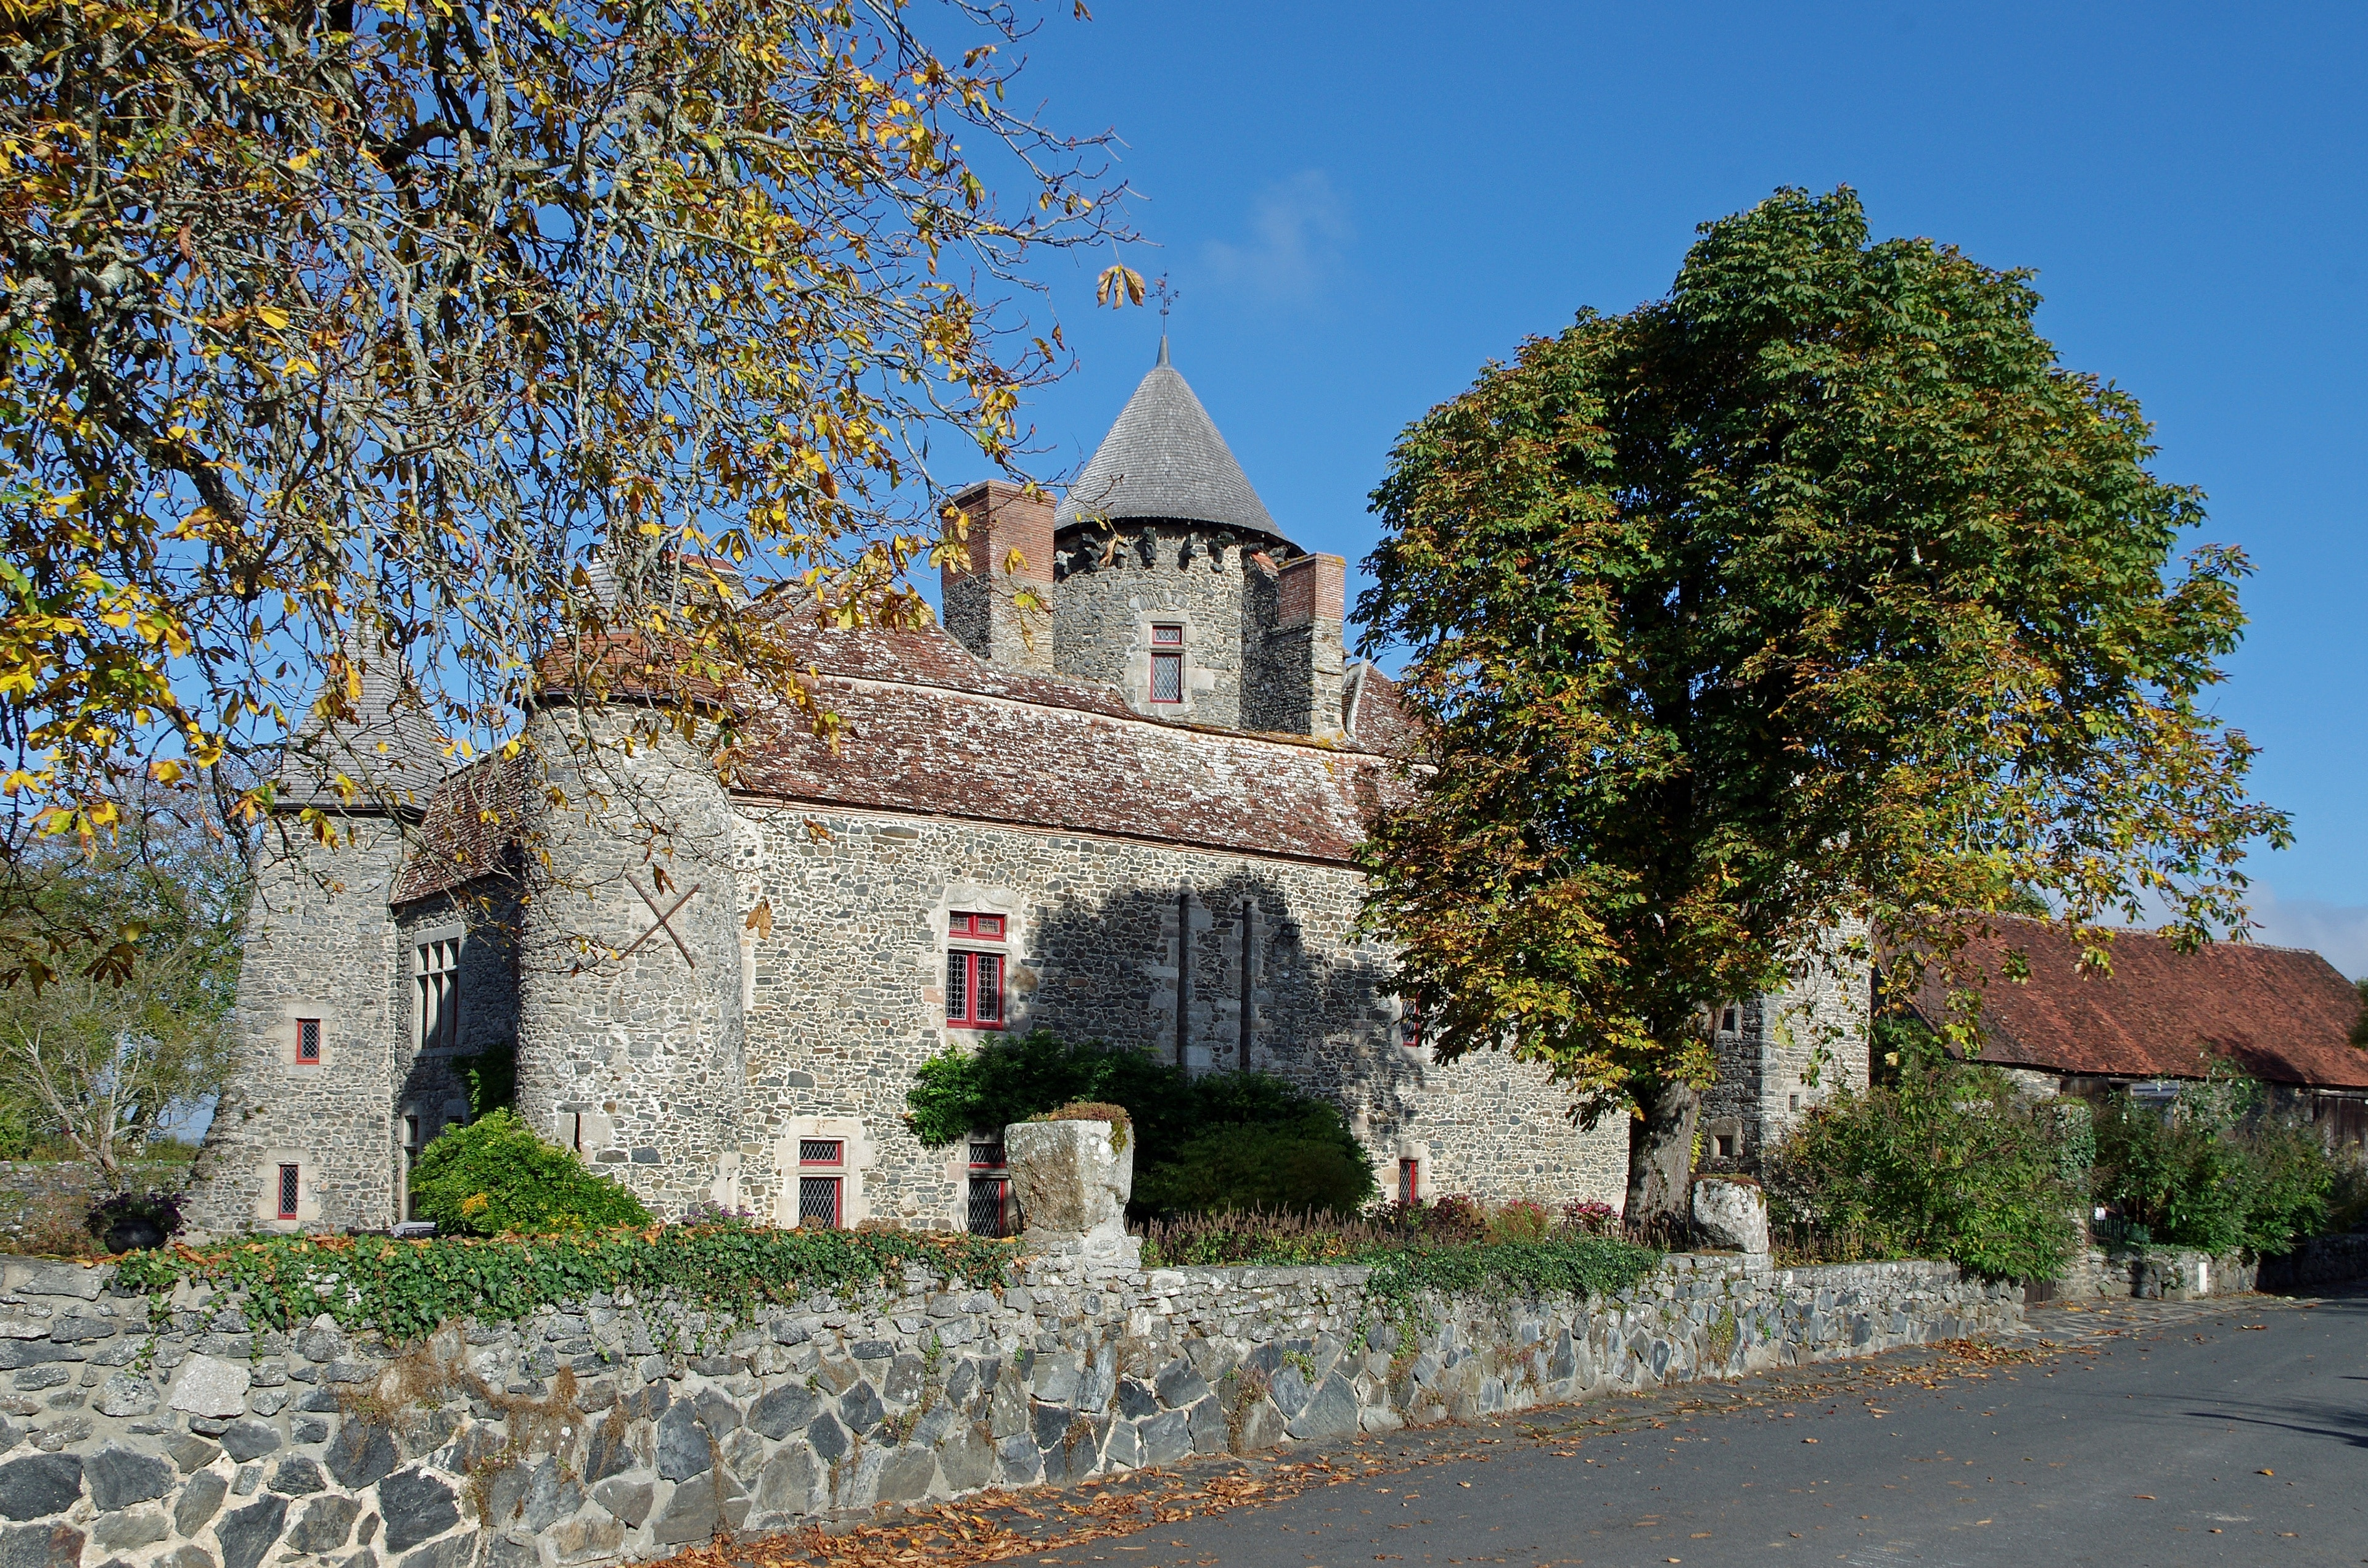 Cuzion, Indre, France